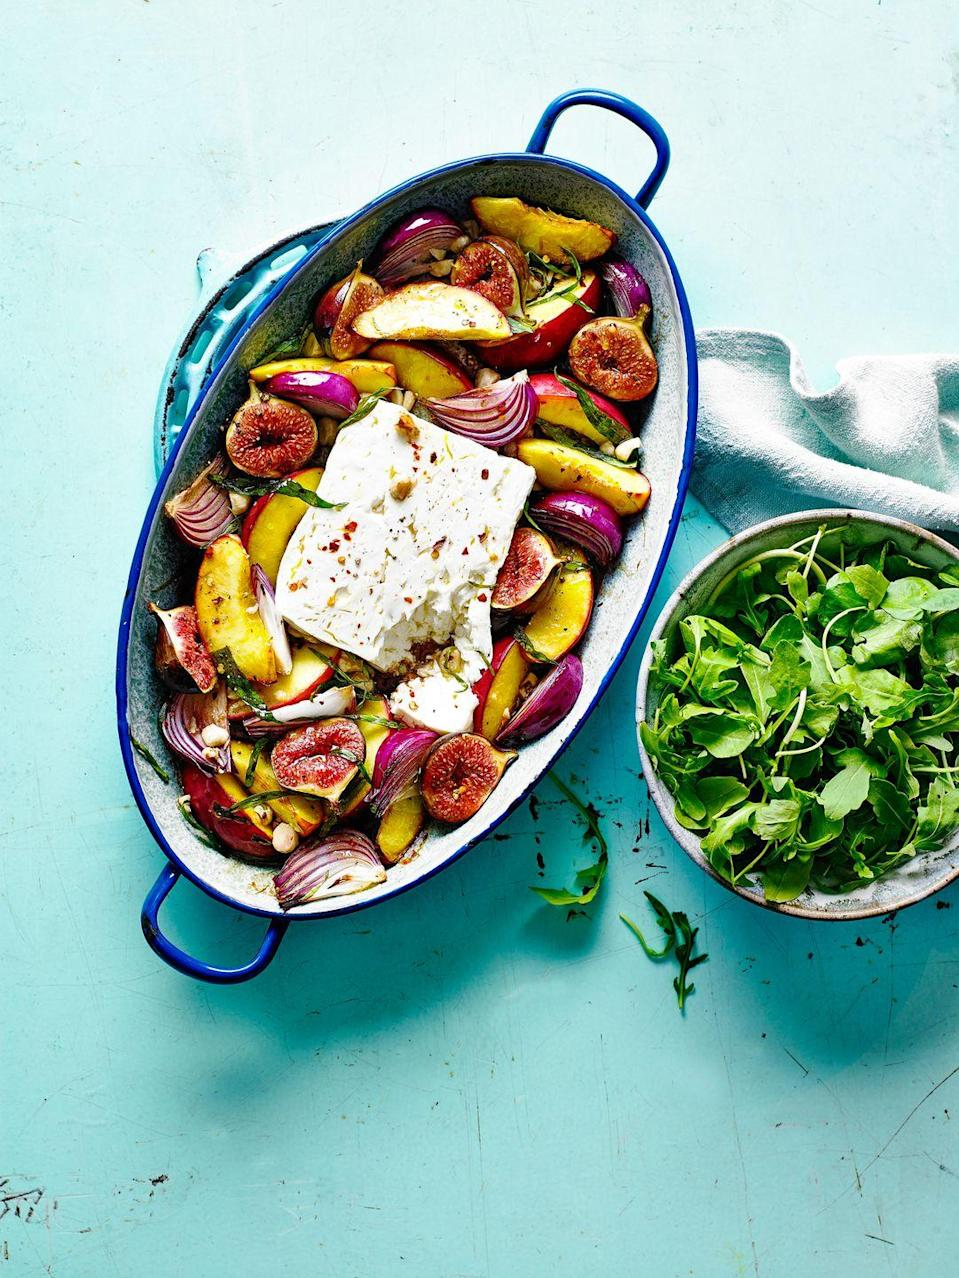 """<p>This fruity feta traybake is ready in 30 minutes which makes an ideal summery midweek meal.</p><p><strong>Recipe: <a href=""""https://www.goodhousekeeping.com/uk/food/recipes/a29206664/baked-feta-traybake/"""" rel=""""nofollow noopener"""" target=""""_blank"""" data-ylk=""""slk:Fruity Baked Feta Traybake"""" class=""""link rapid-noclick-resp"""">Fruity Baked Feta Traybake</a></strong></p>"""